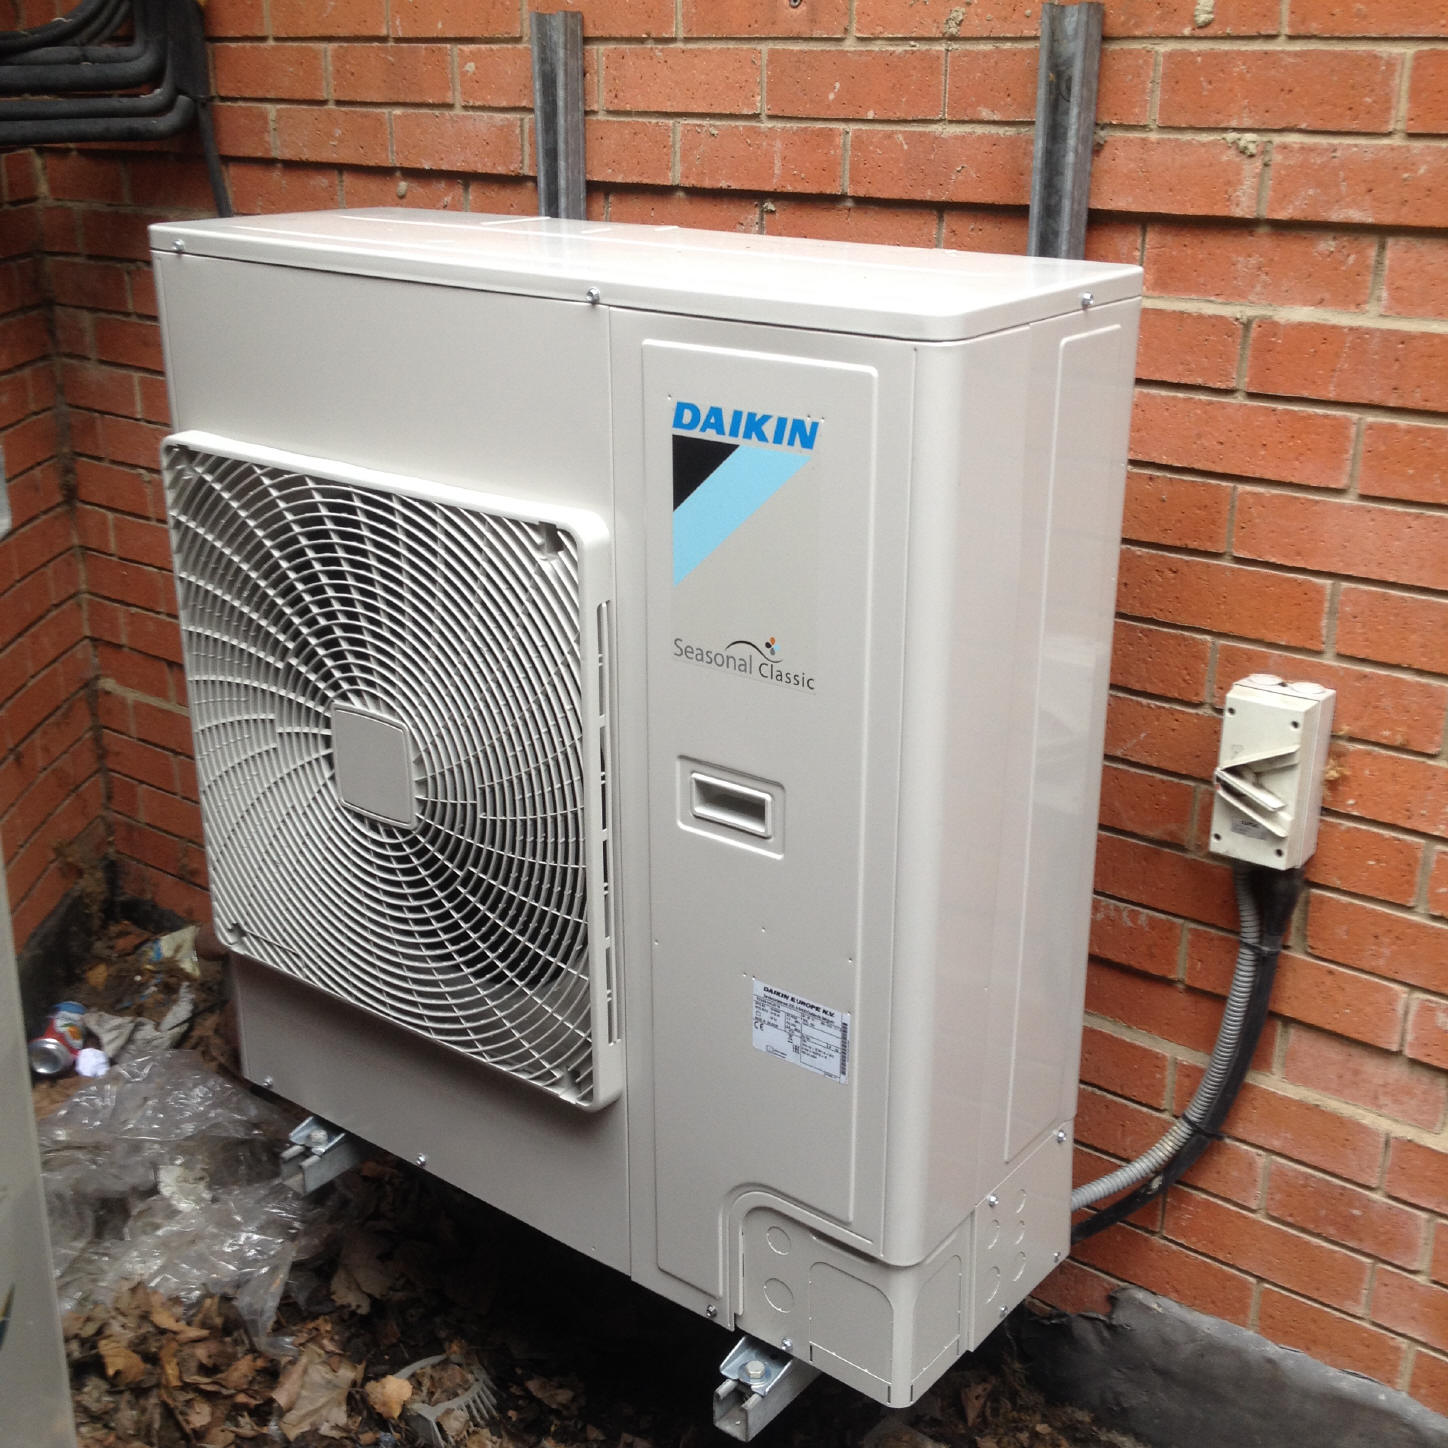 #1A74B1 Ruddy Joinery London SE1 Air Conditioning Daikin VRF Heat  Recommended 10597 Air Conditioner Vrf System pics with 1448x1448 px on helpvideos.info - Air Conditioners, Air Coolers and more